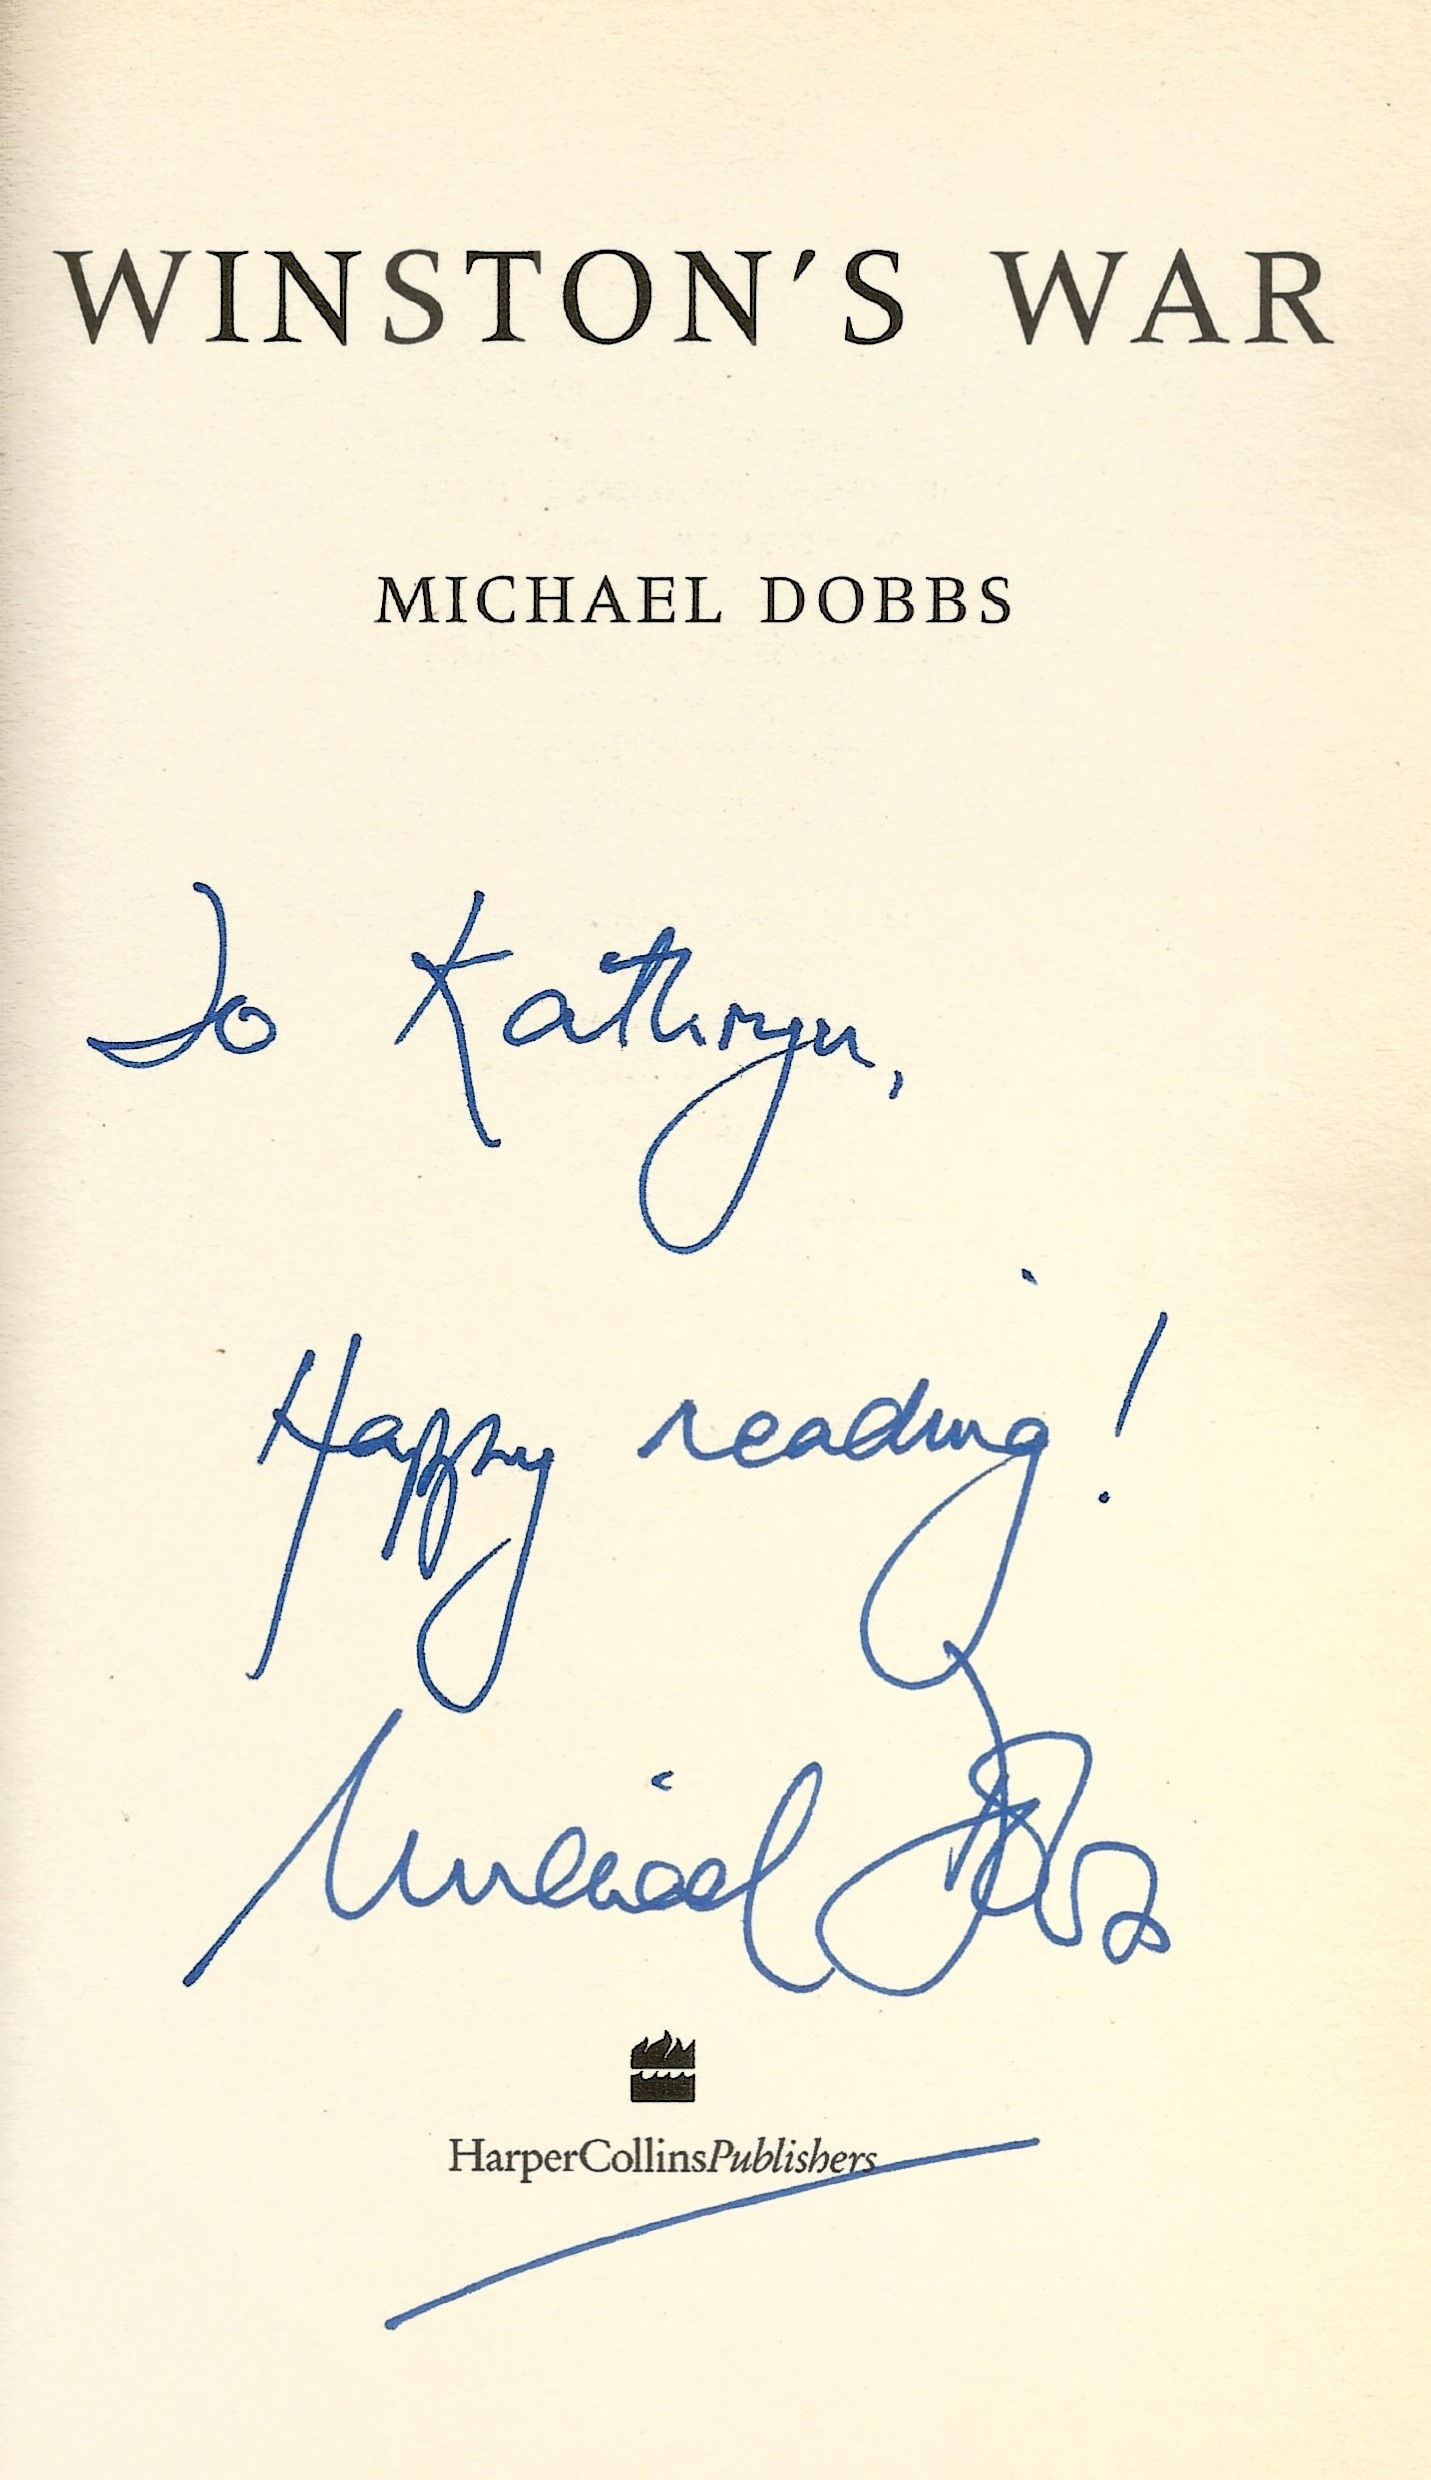 Michael Dobbs. Winston's War. A WW2 First Edition Hardback book in good condition. Dedicated. Signed - Image 2 of 3